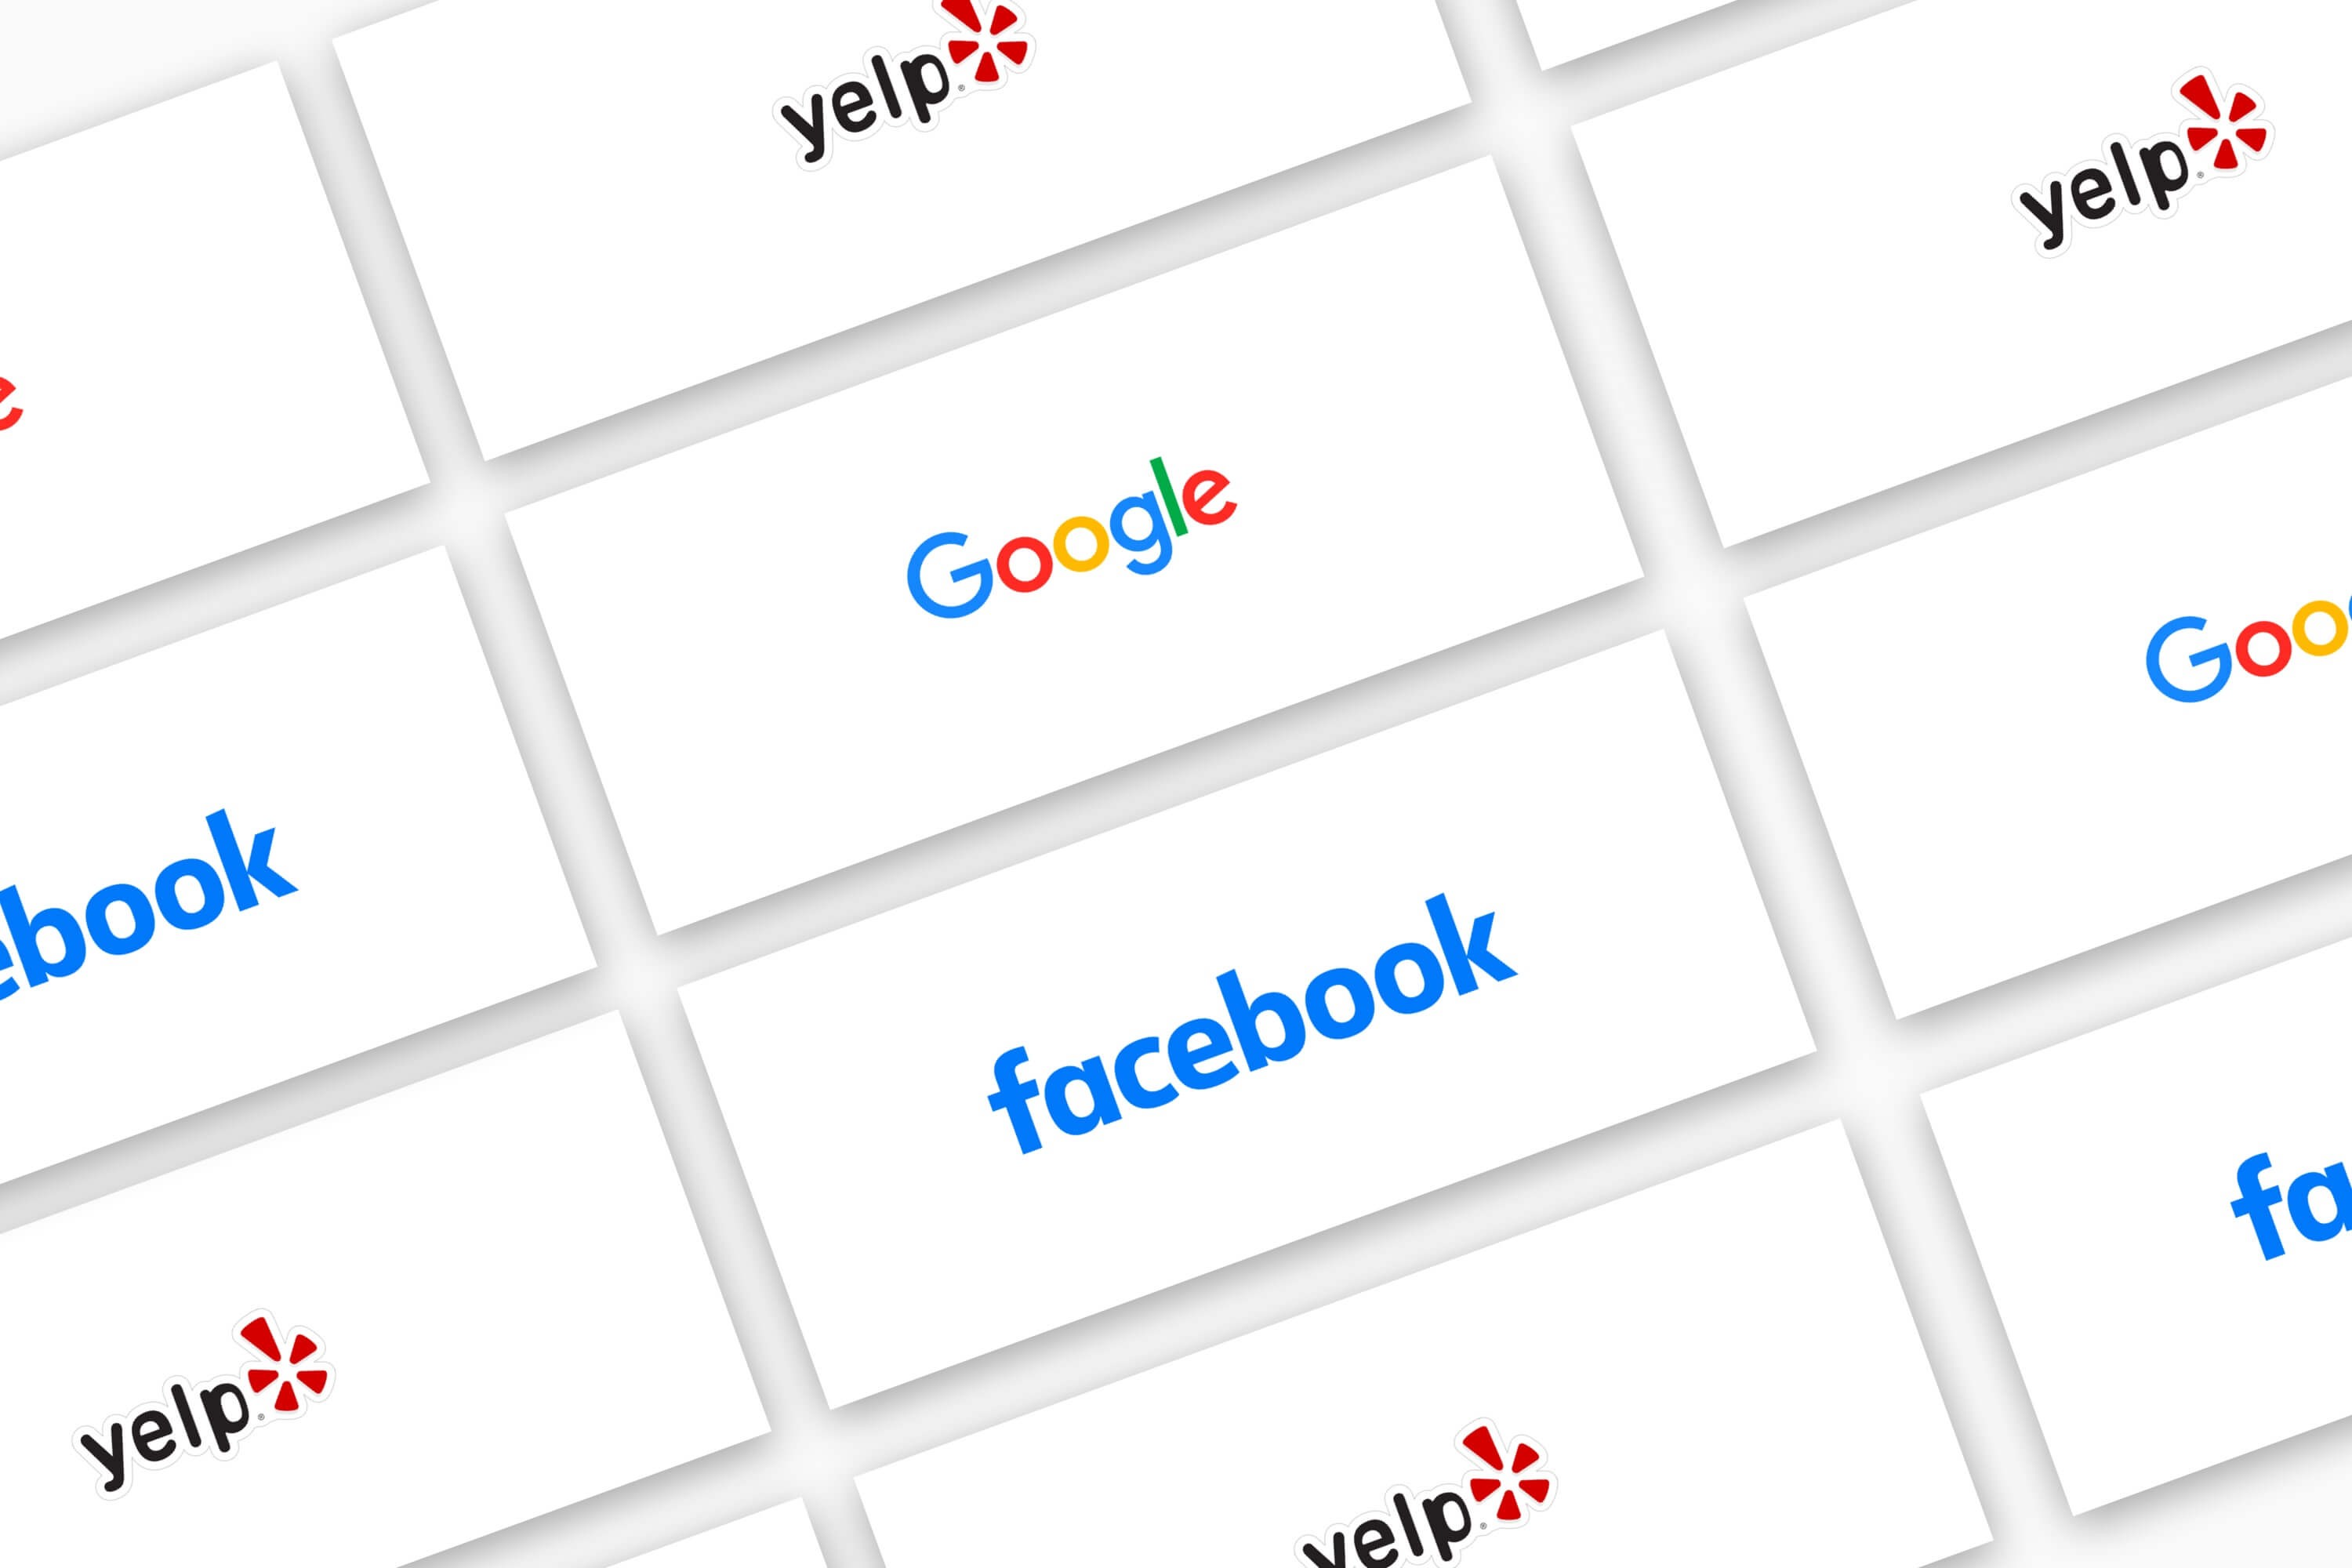 Logos for Google, Facebook and Yelp.